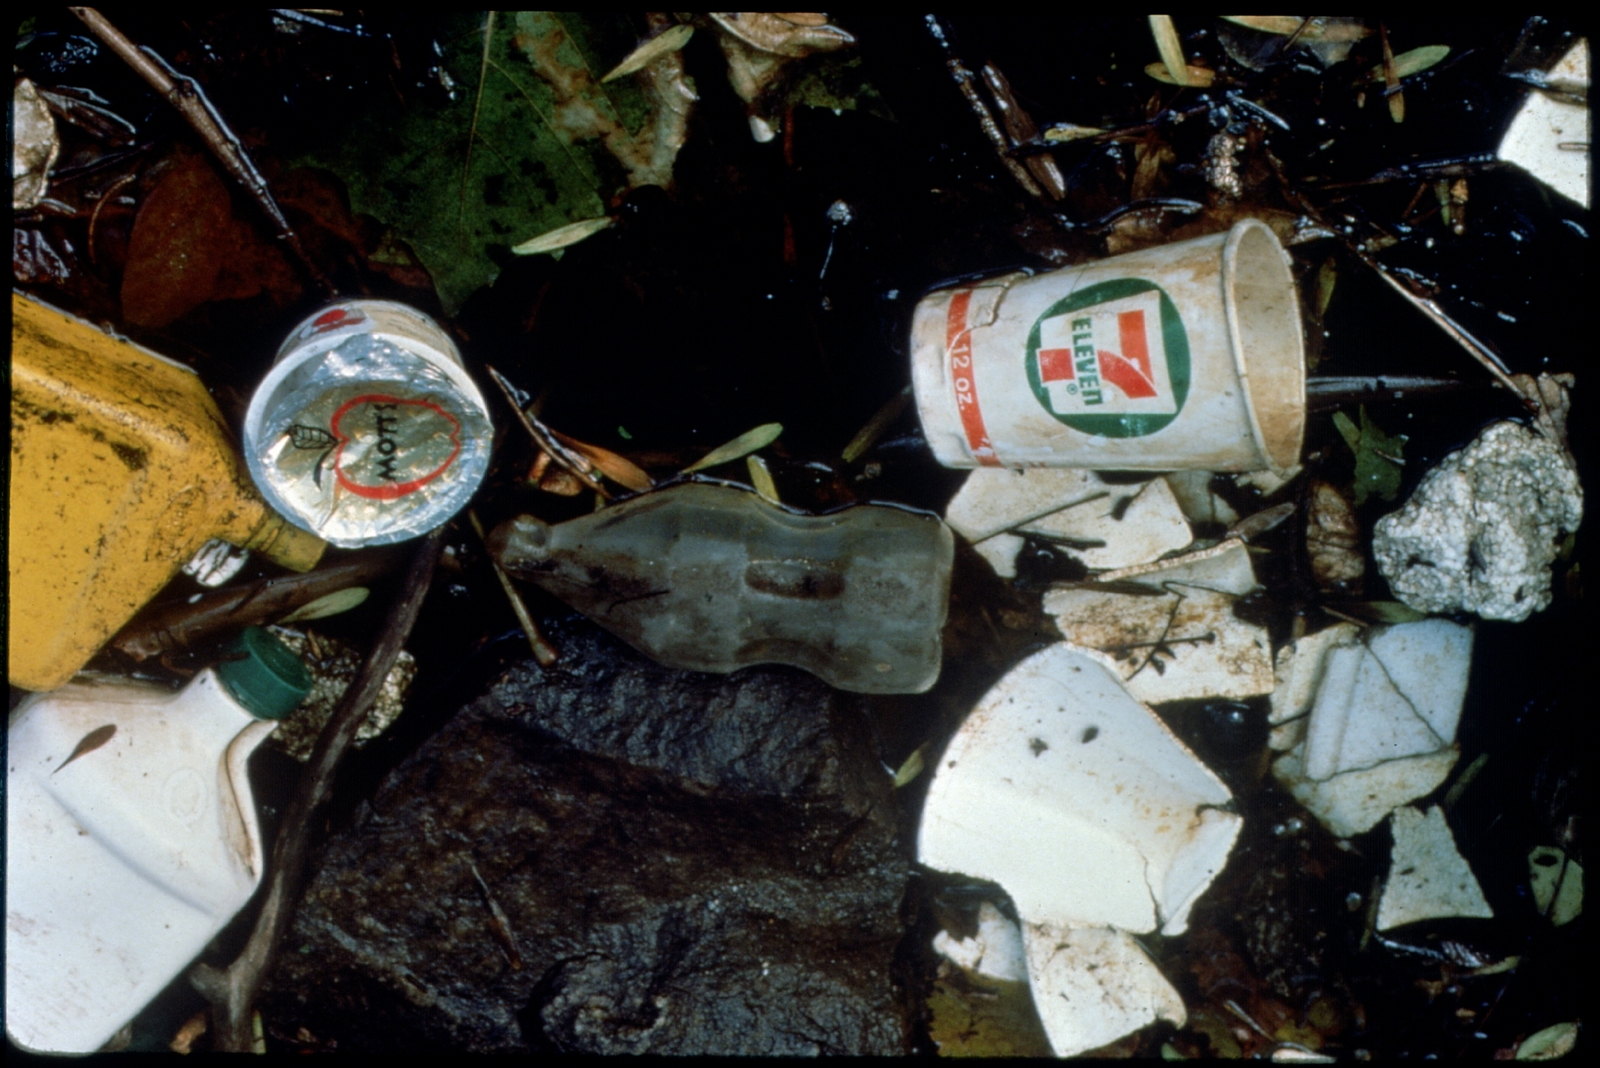 Library of Environmental Images, Office of Research and Development (ORD), September 1996 - Pollution Prevention - Oily trash and debris on ground